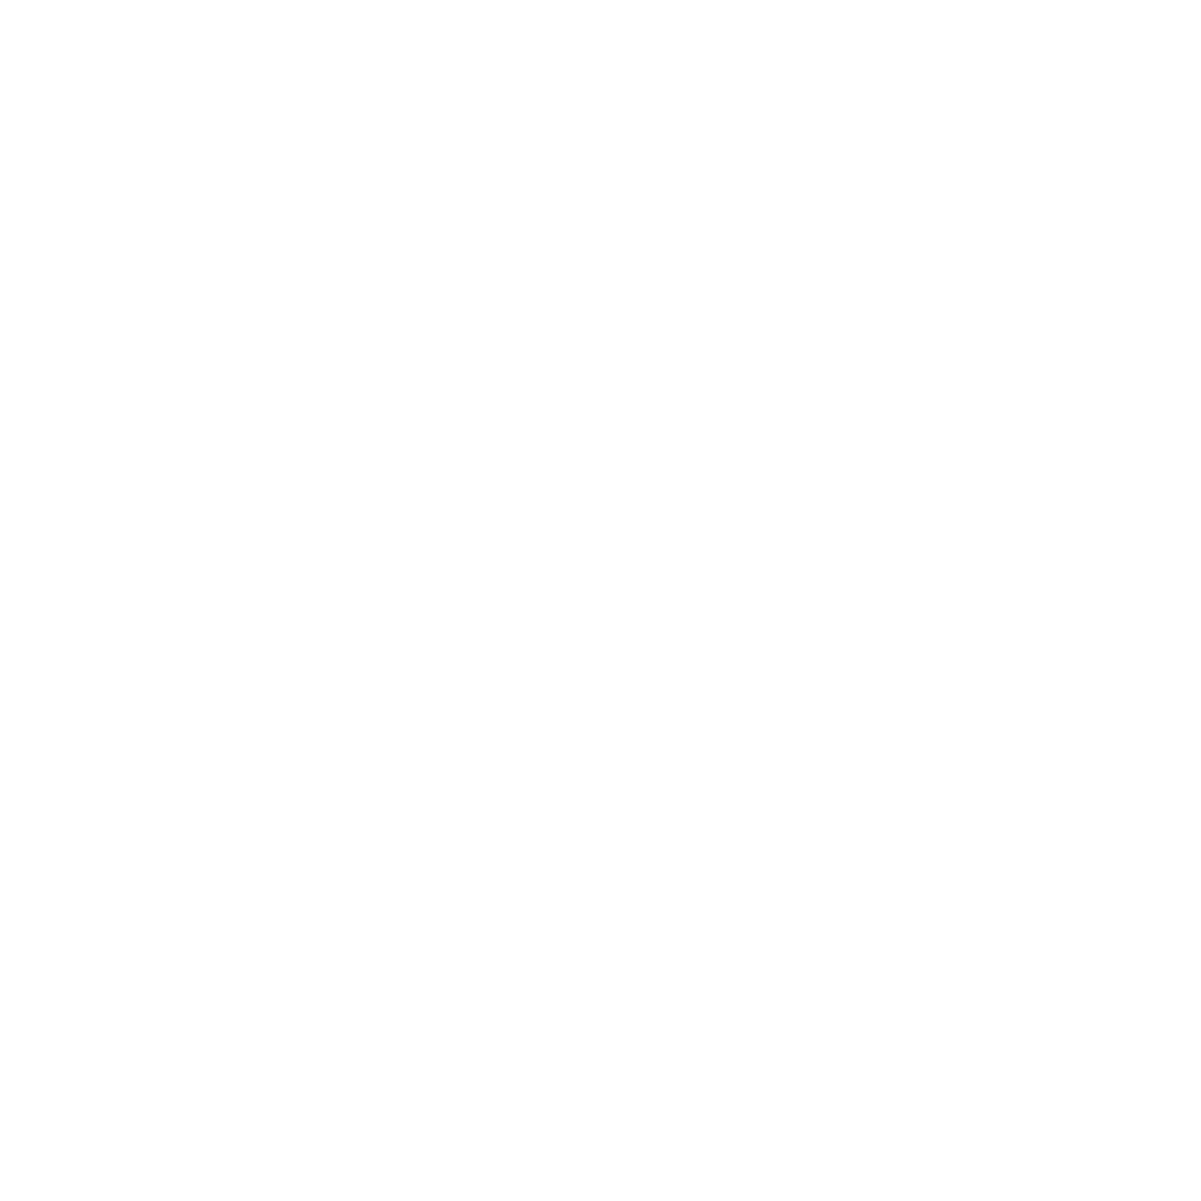 Laura Meyer Creative